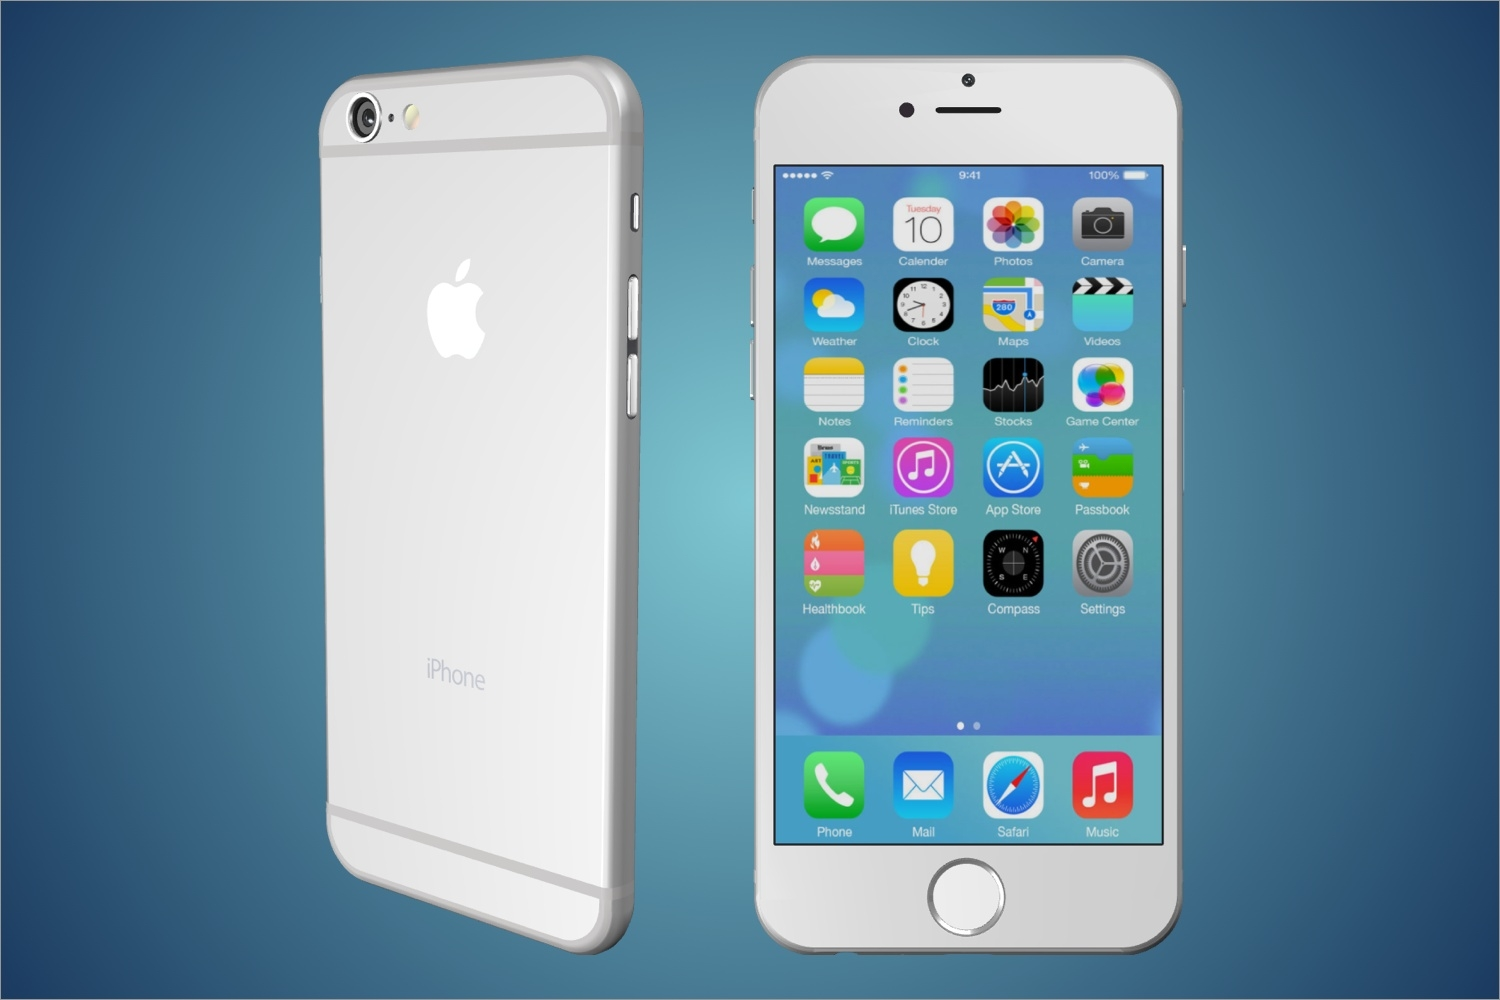 Here's What We Think The iPhone 6 Will Look Like